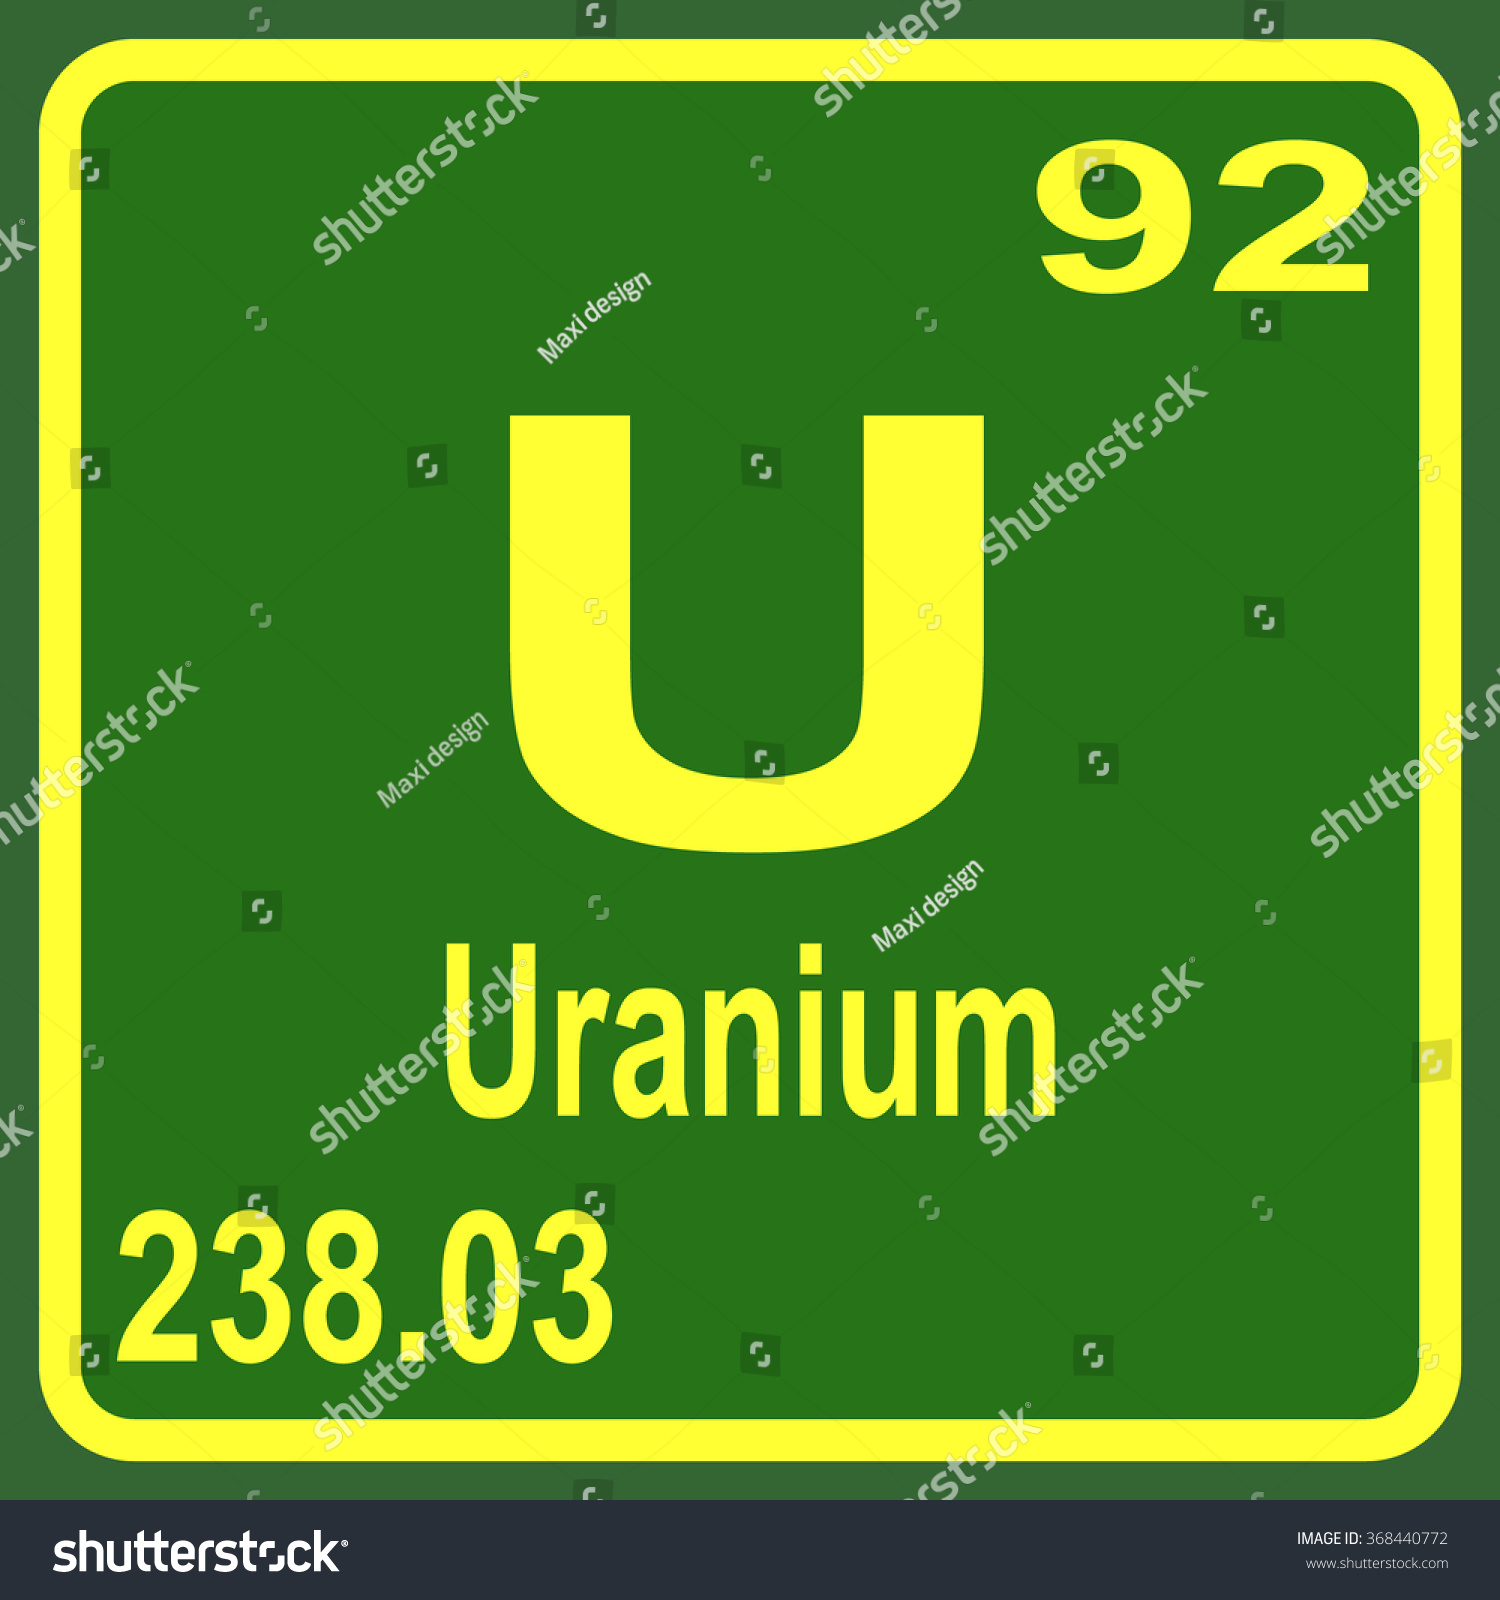 Periodic table elements uranium stock vector 368440772 shutterstock periodic table of elements uranium gamestrikefo Image collections